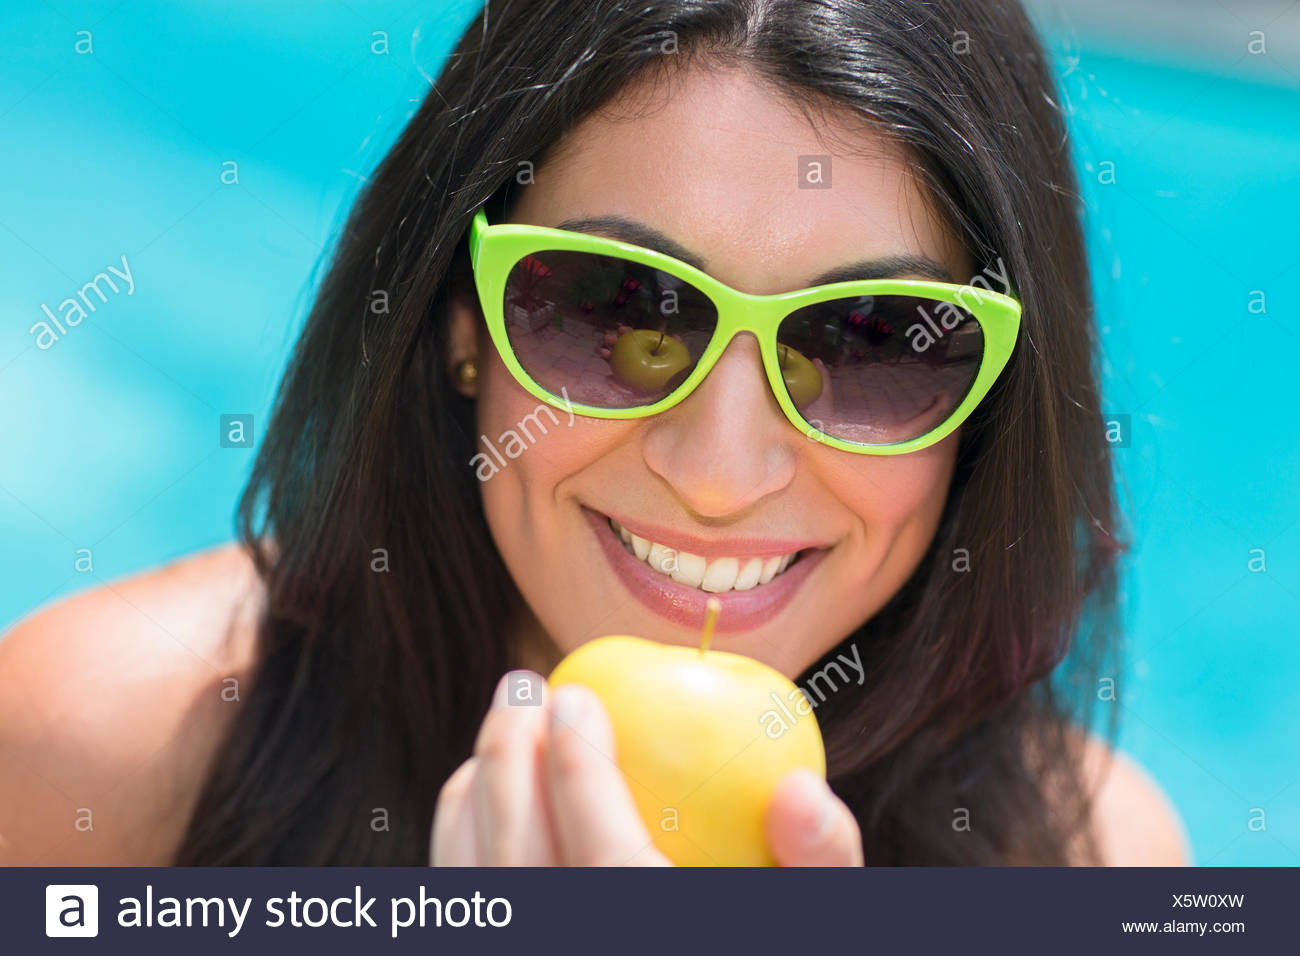 Portrait of young woman by pool holding up apple - Stock Image